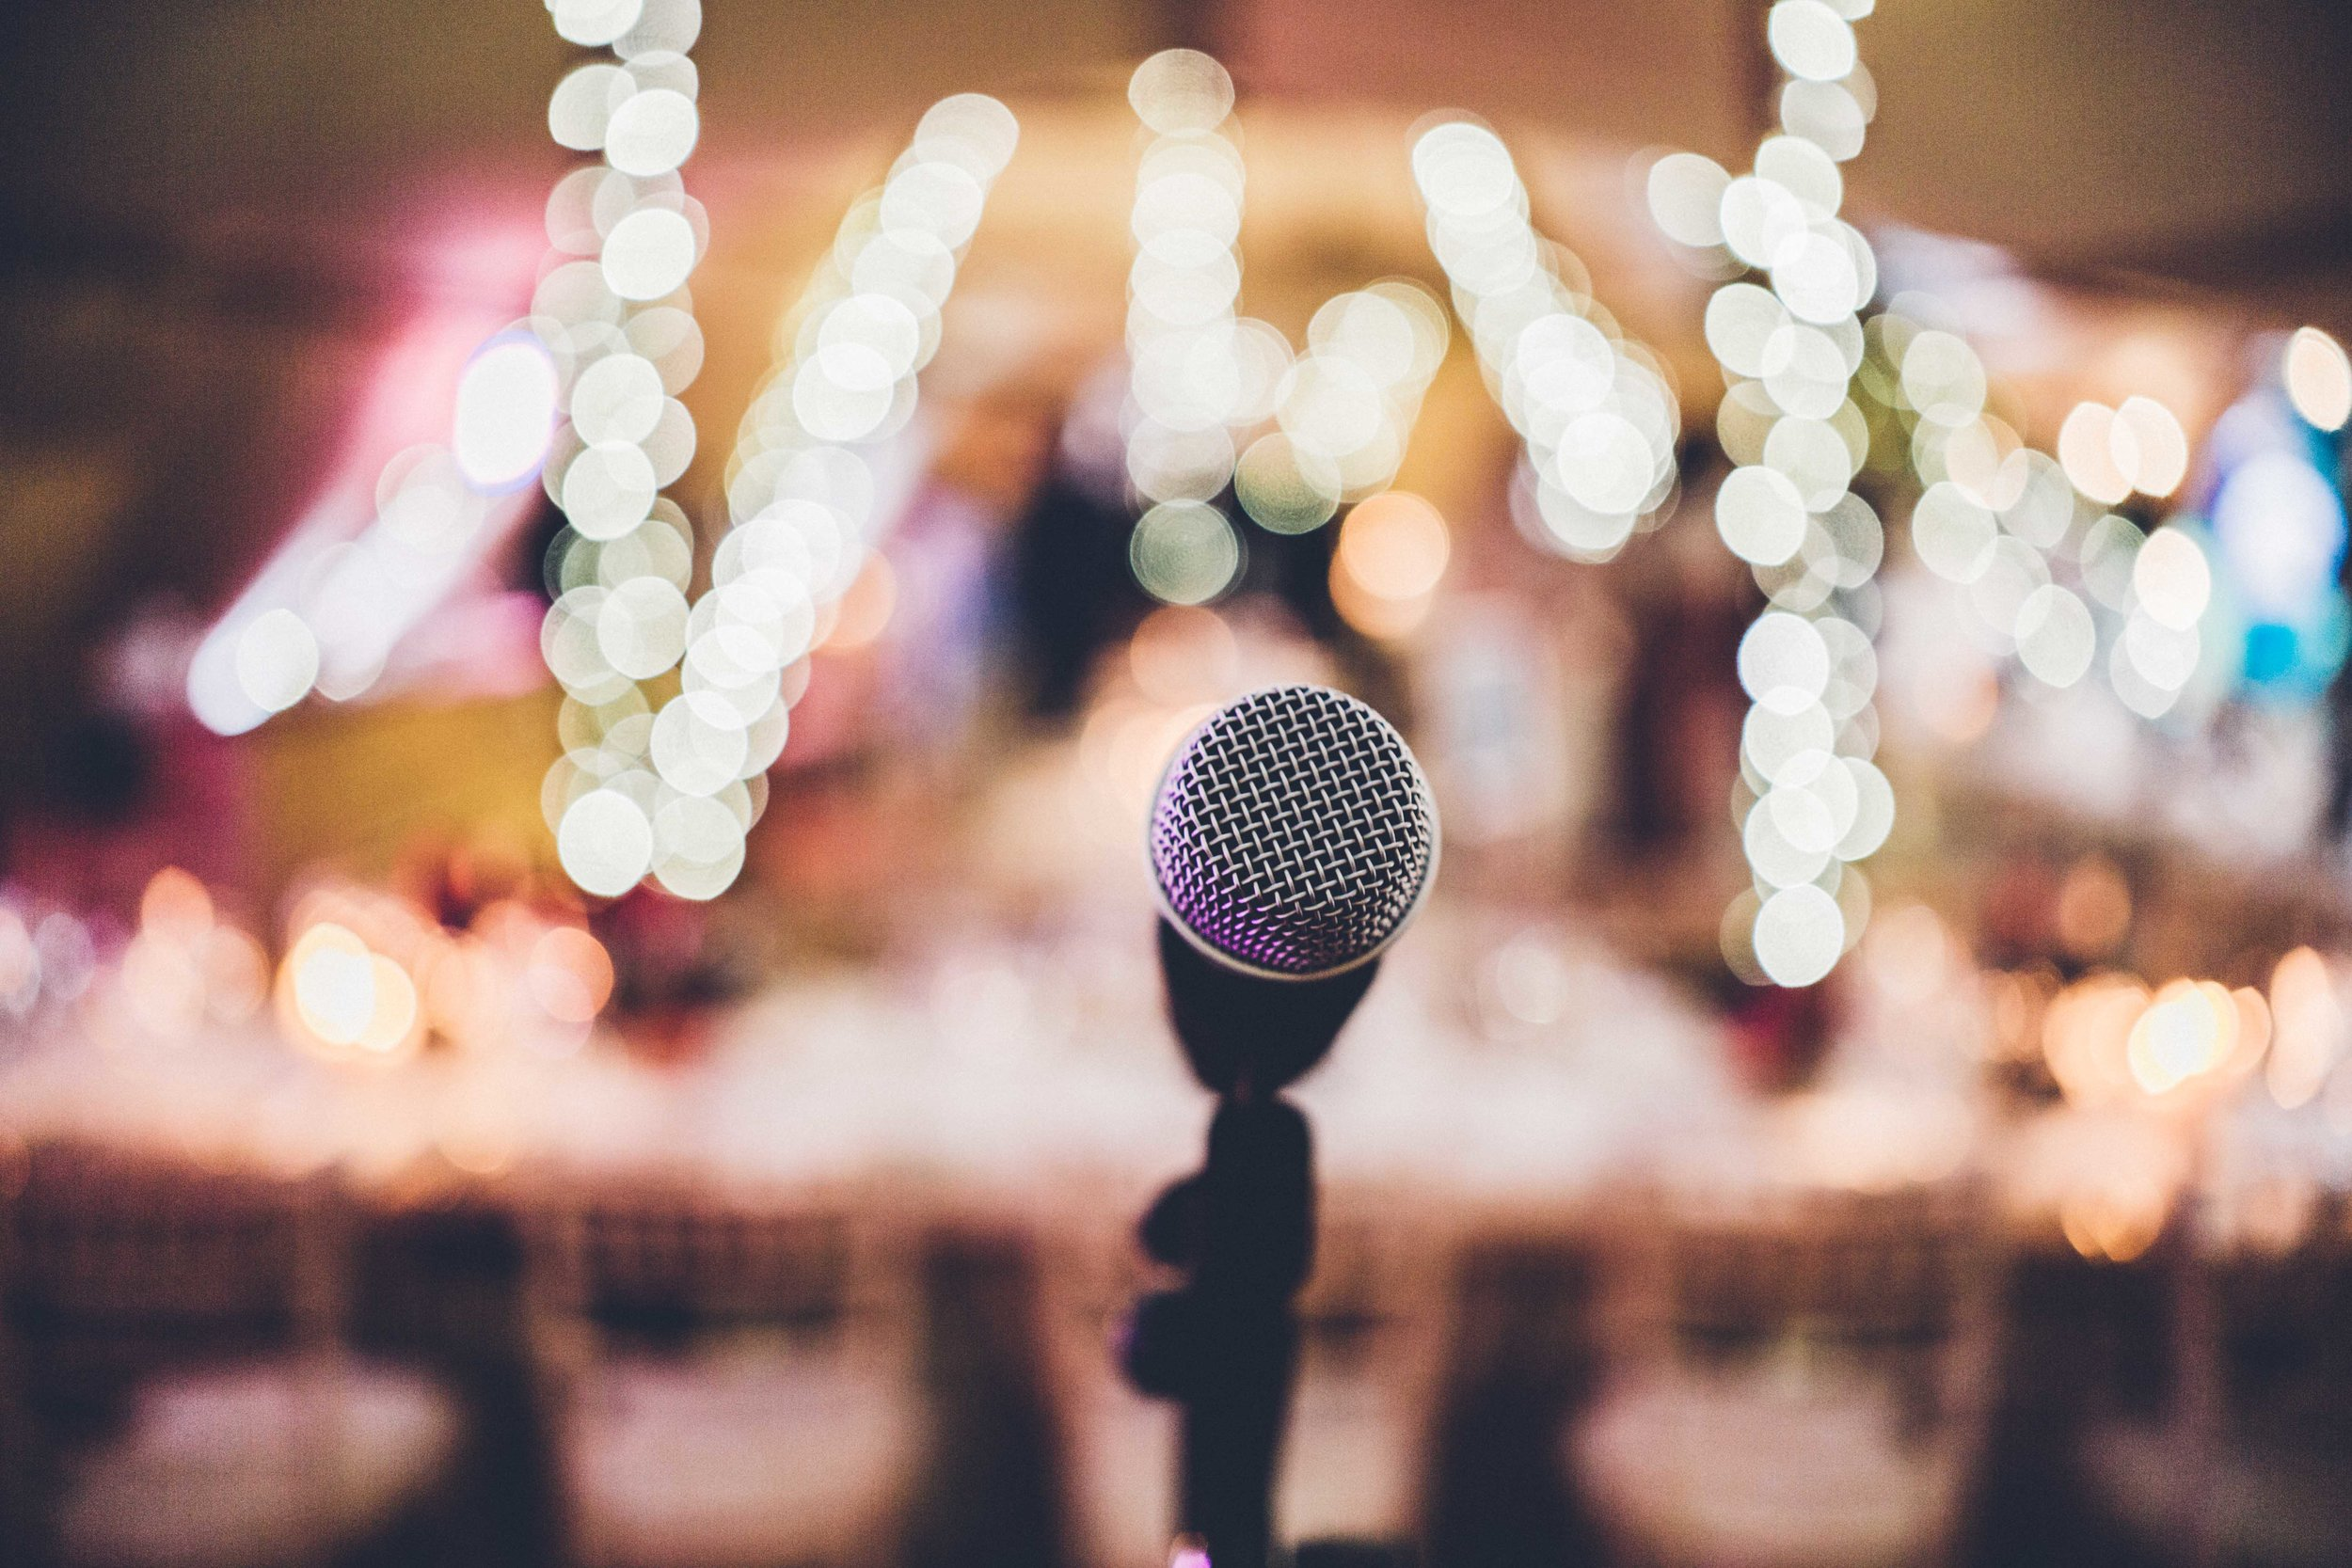 OPEN MIC NIGHT - Join us for an evening of dazzling local talent, including singer song-writers, stand-up comedians, poets and more.